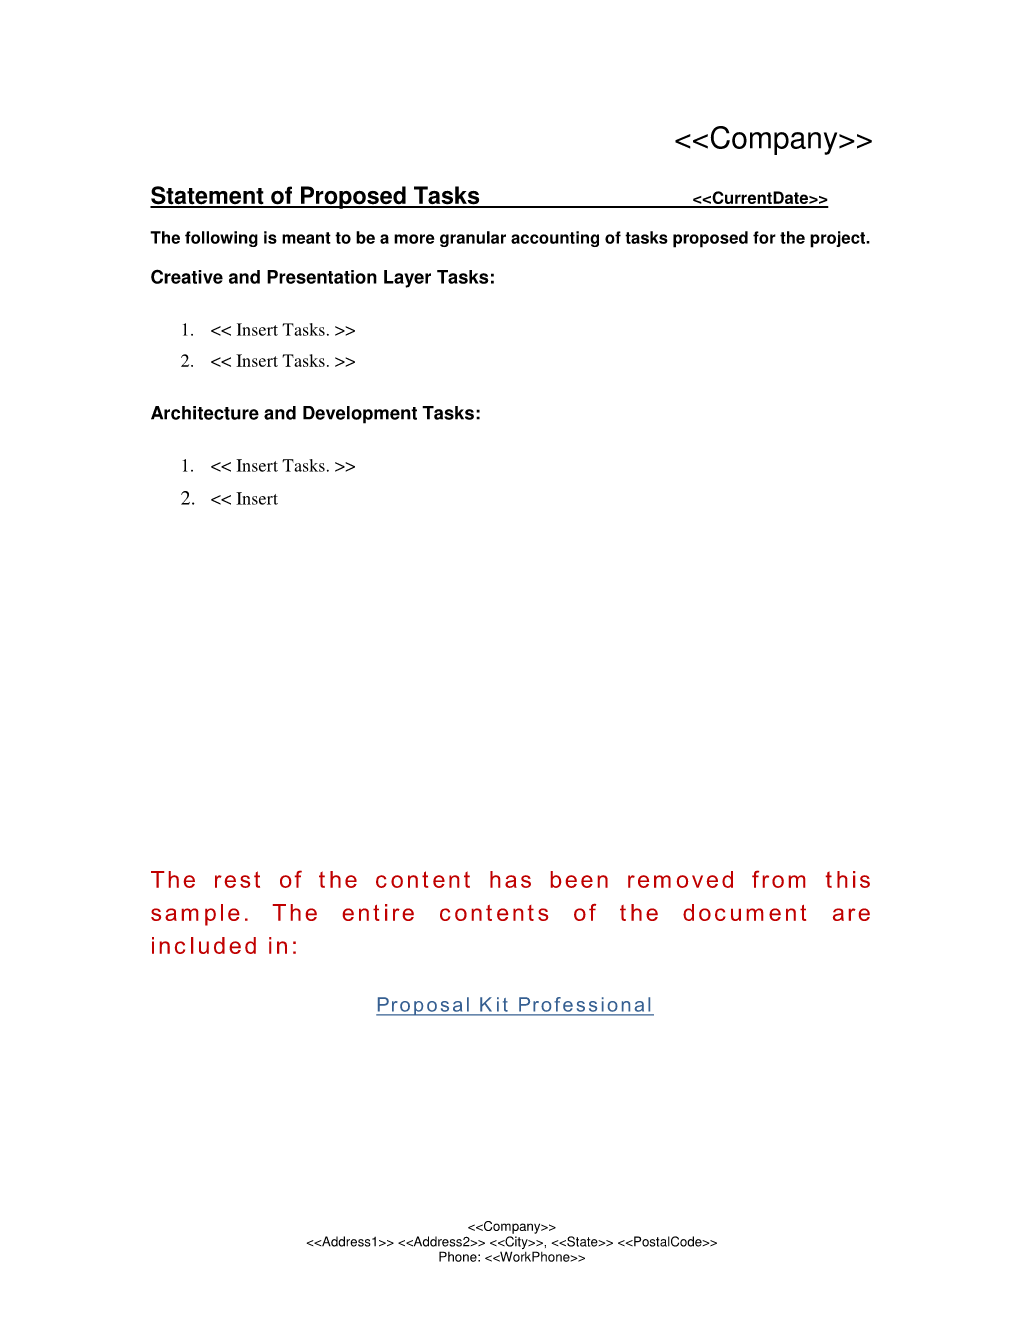 How To Write Your Own Statement Of Proposed Tasks